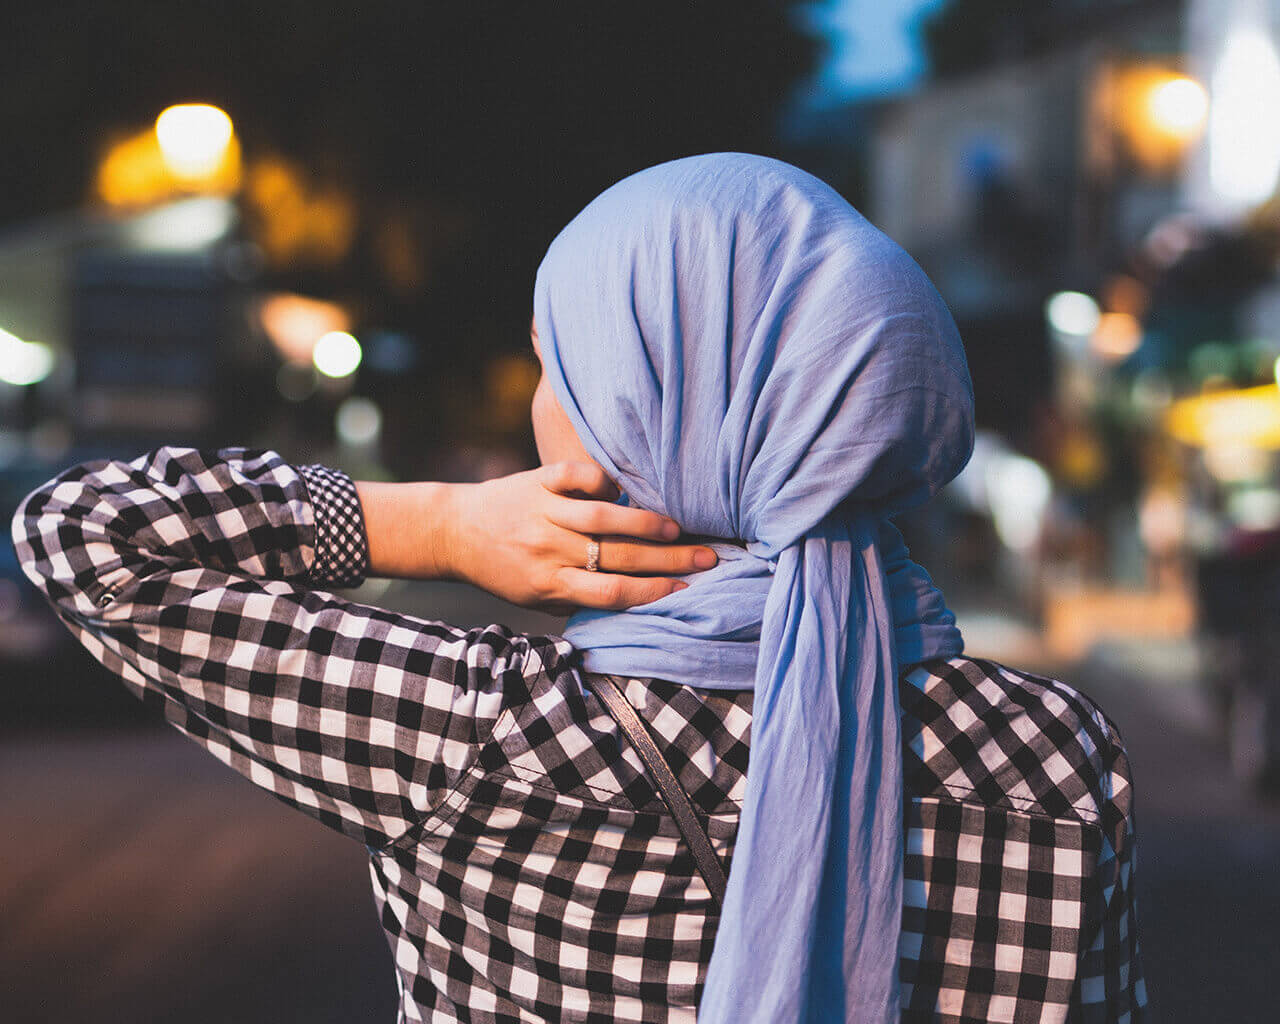 pic of a girl with a headscarf